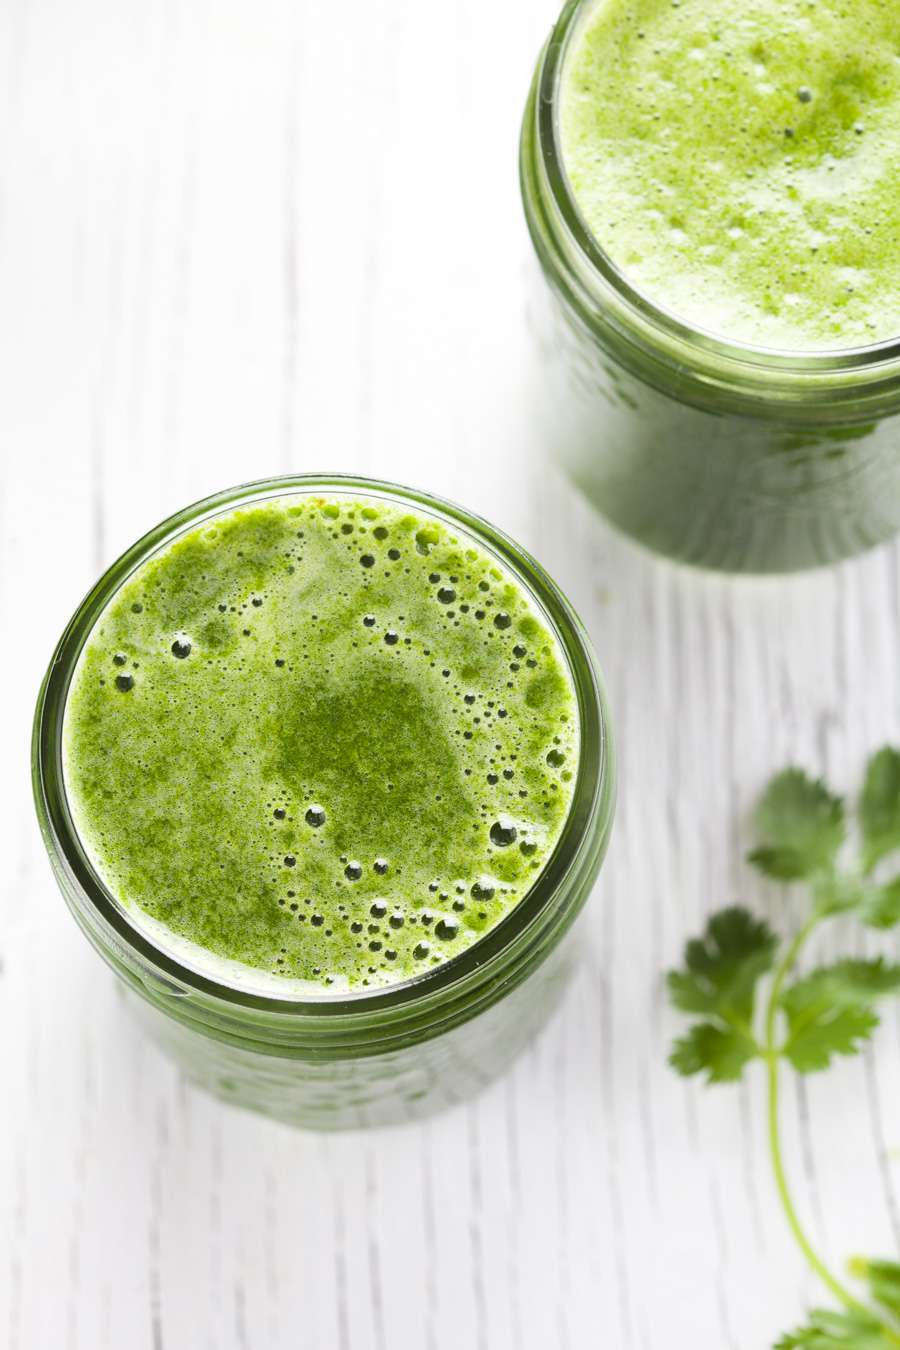 Toronto_Food_Photographer_Joanna_Wojewoda_Green_juice-2.jpg